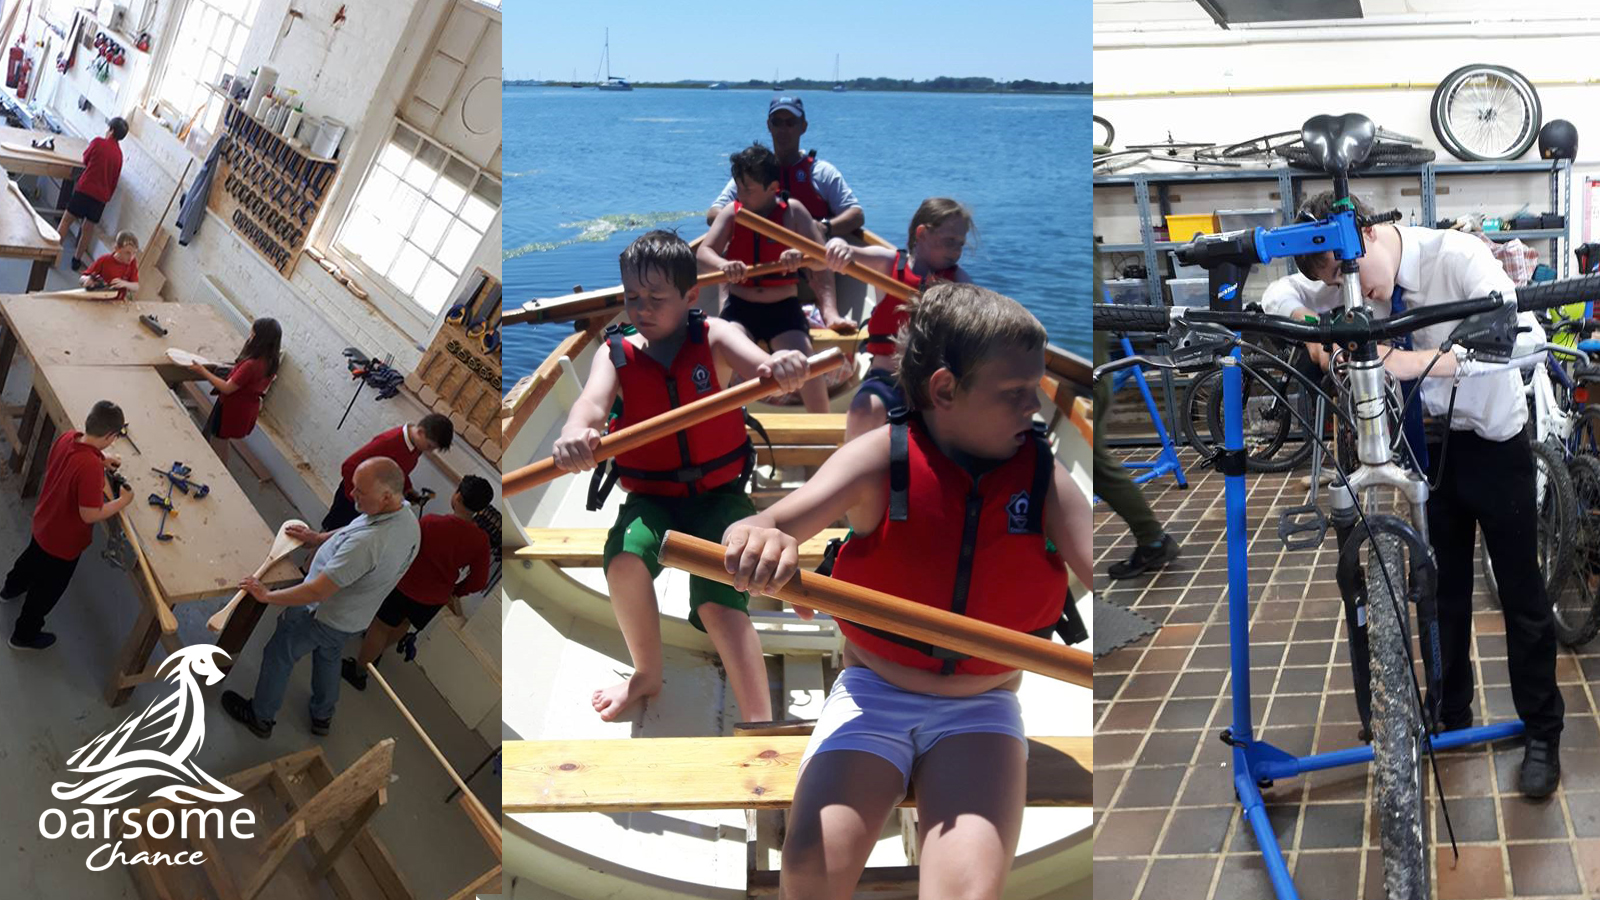 Oarsome Chance activities